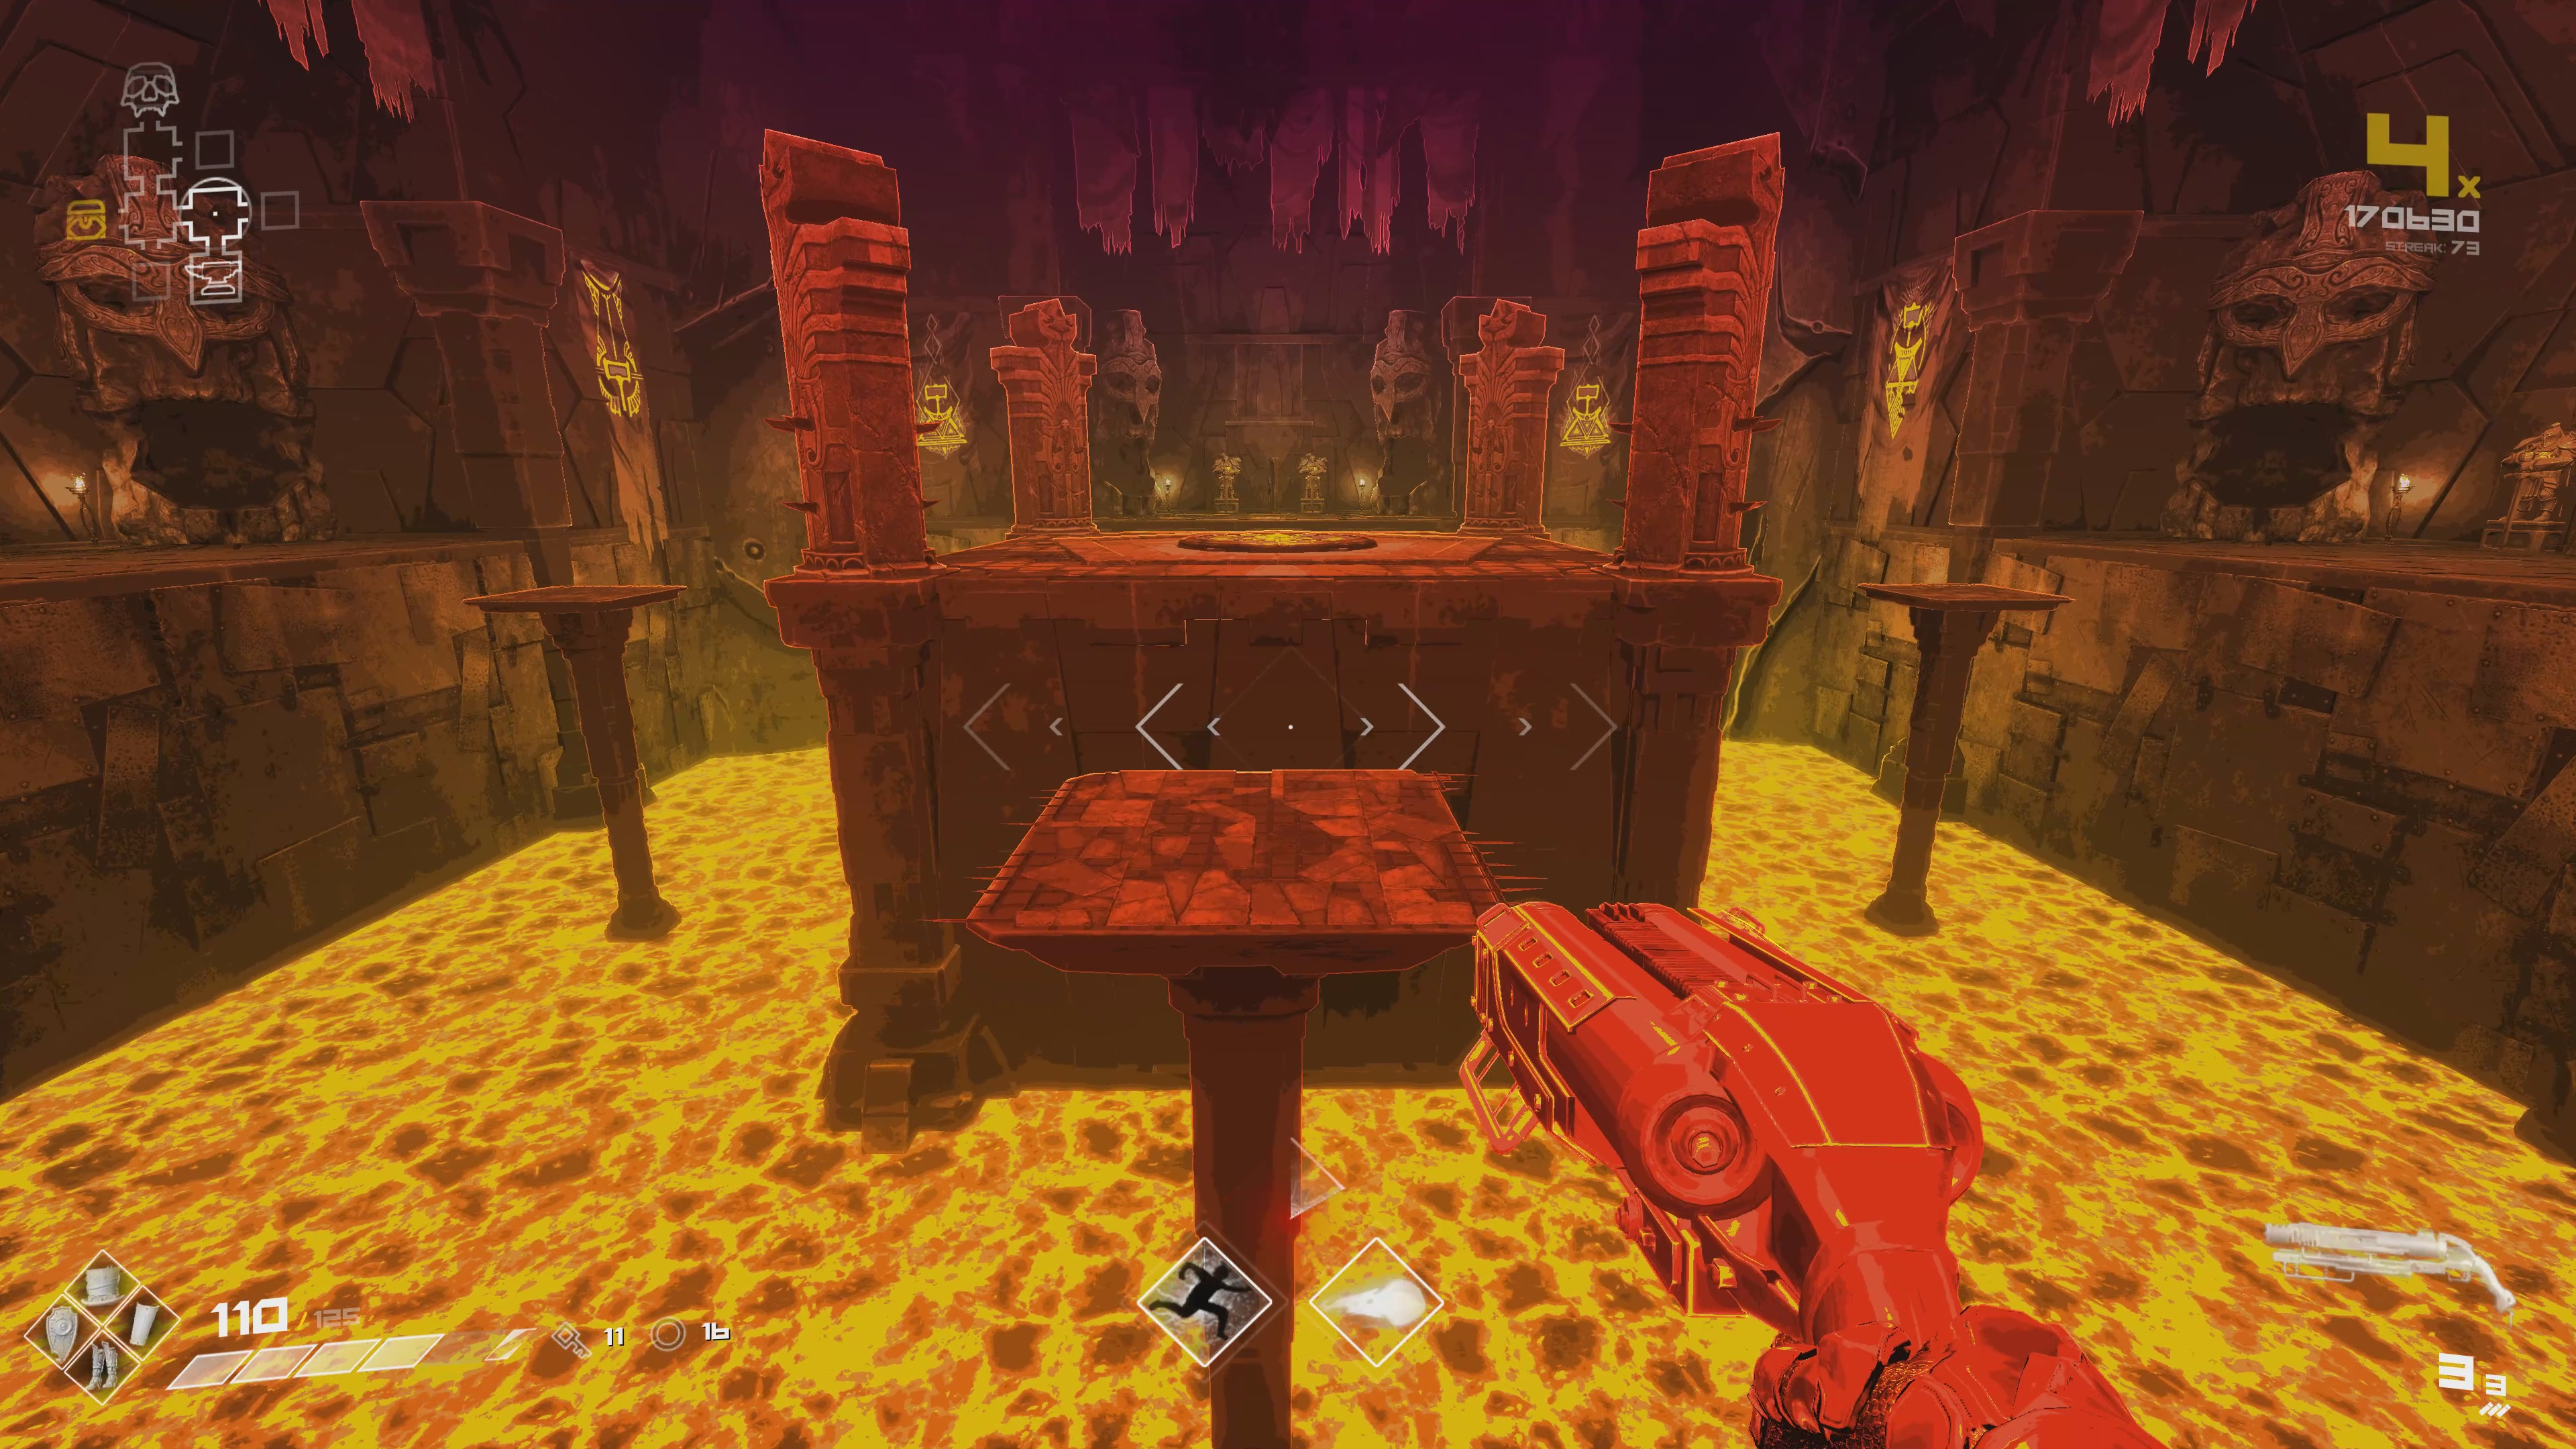 gameplay-screenshot